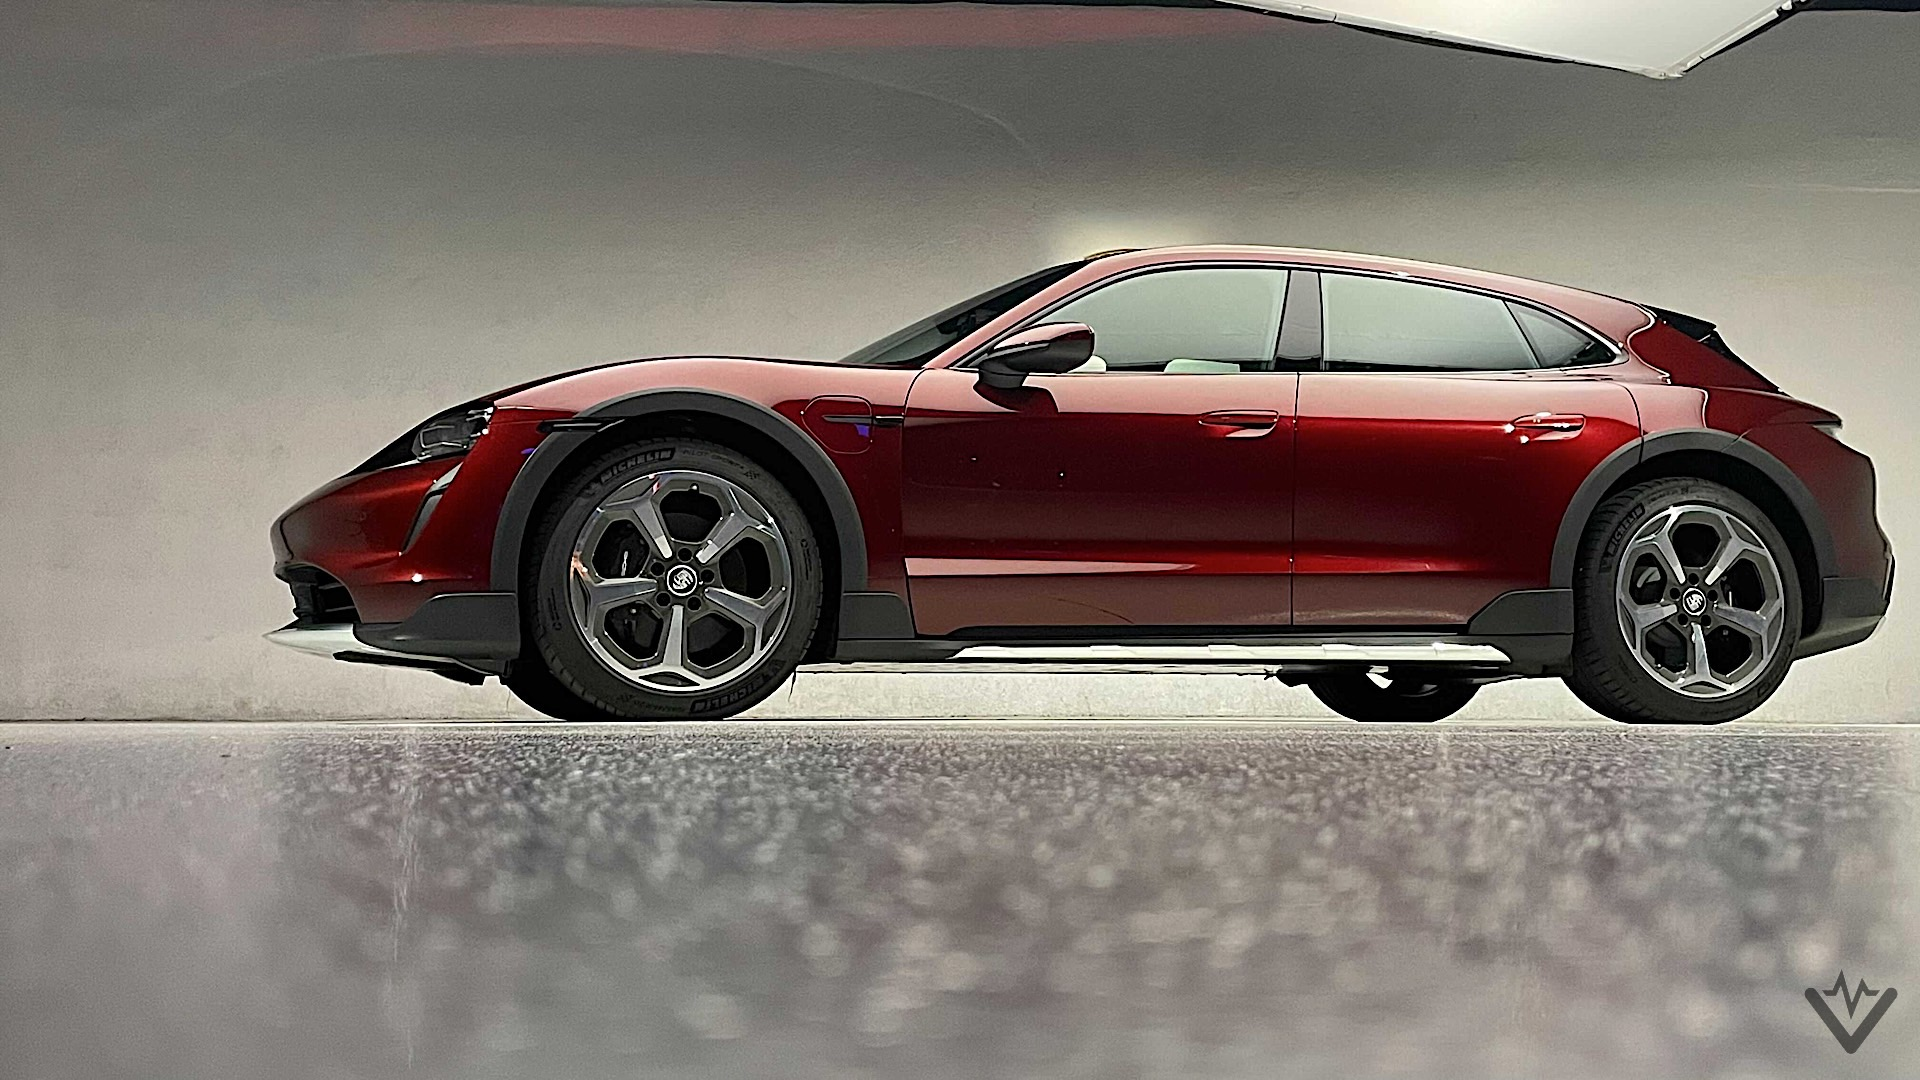 2021 Porsche Taycan Cross Turismo first drive Image from iOS 131 1